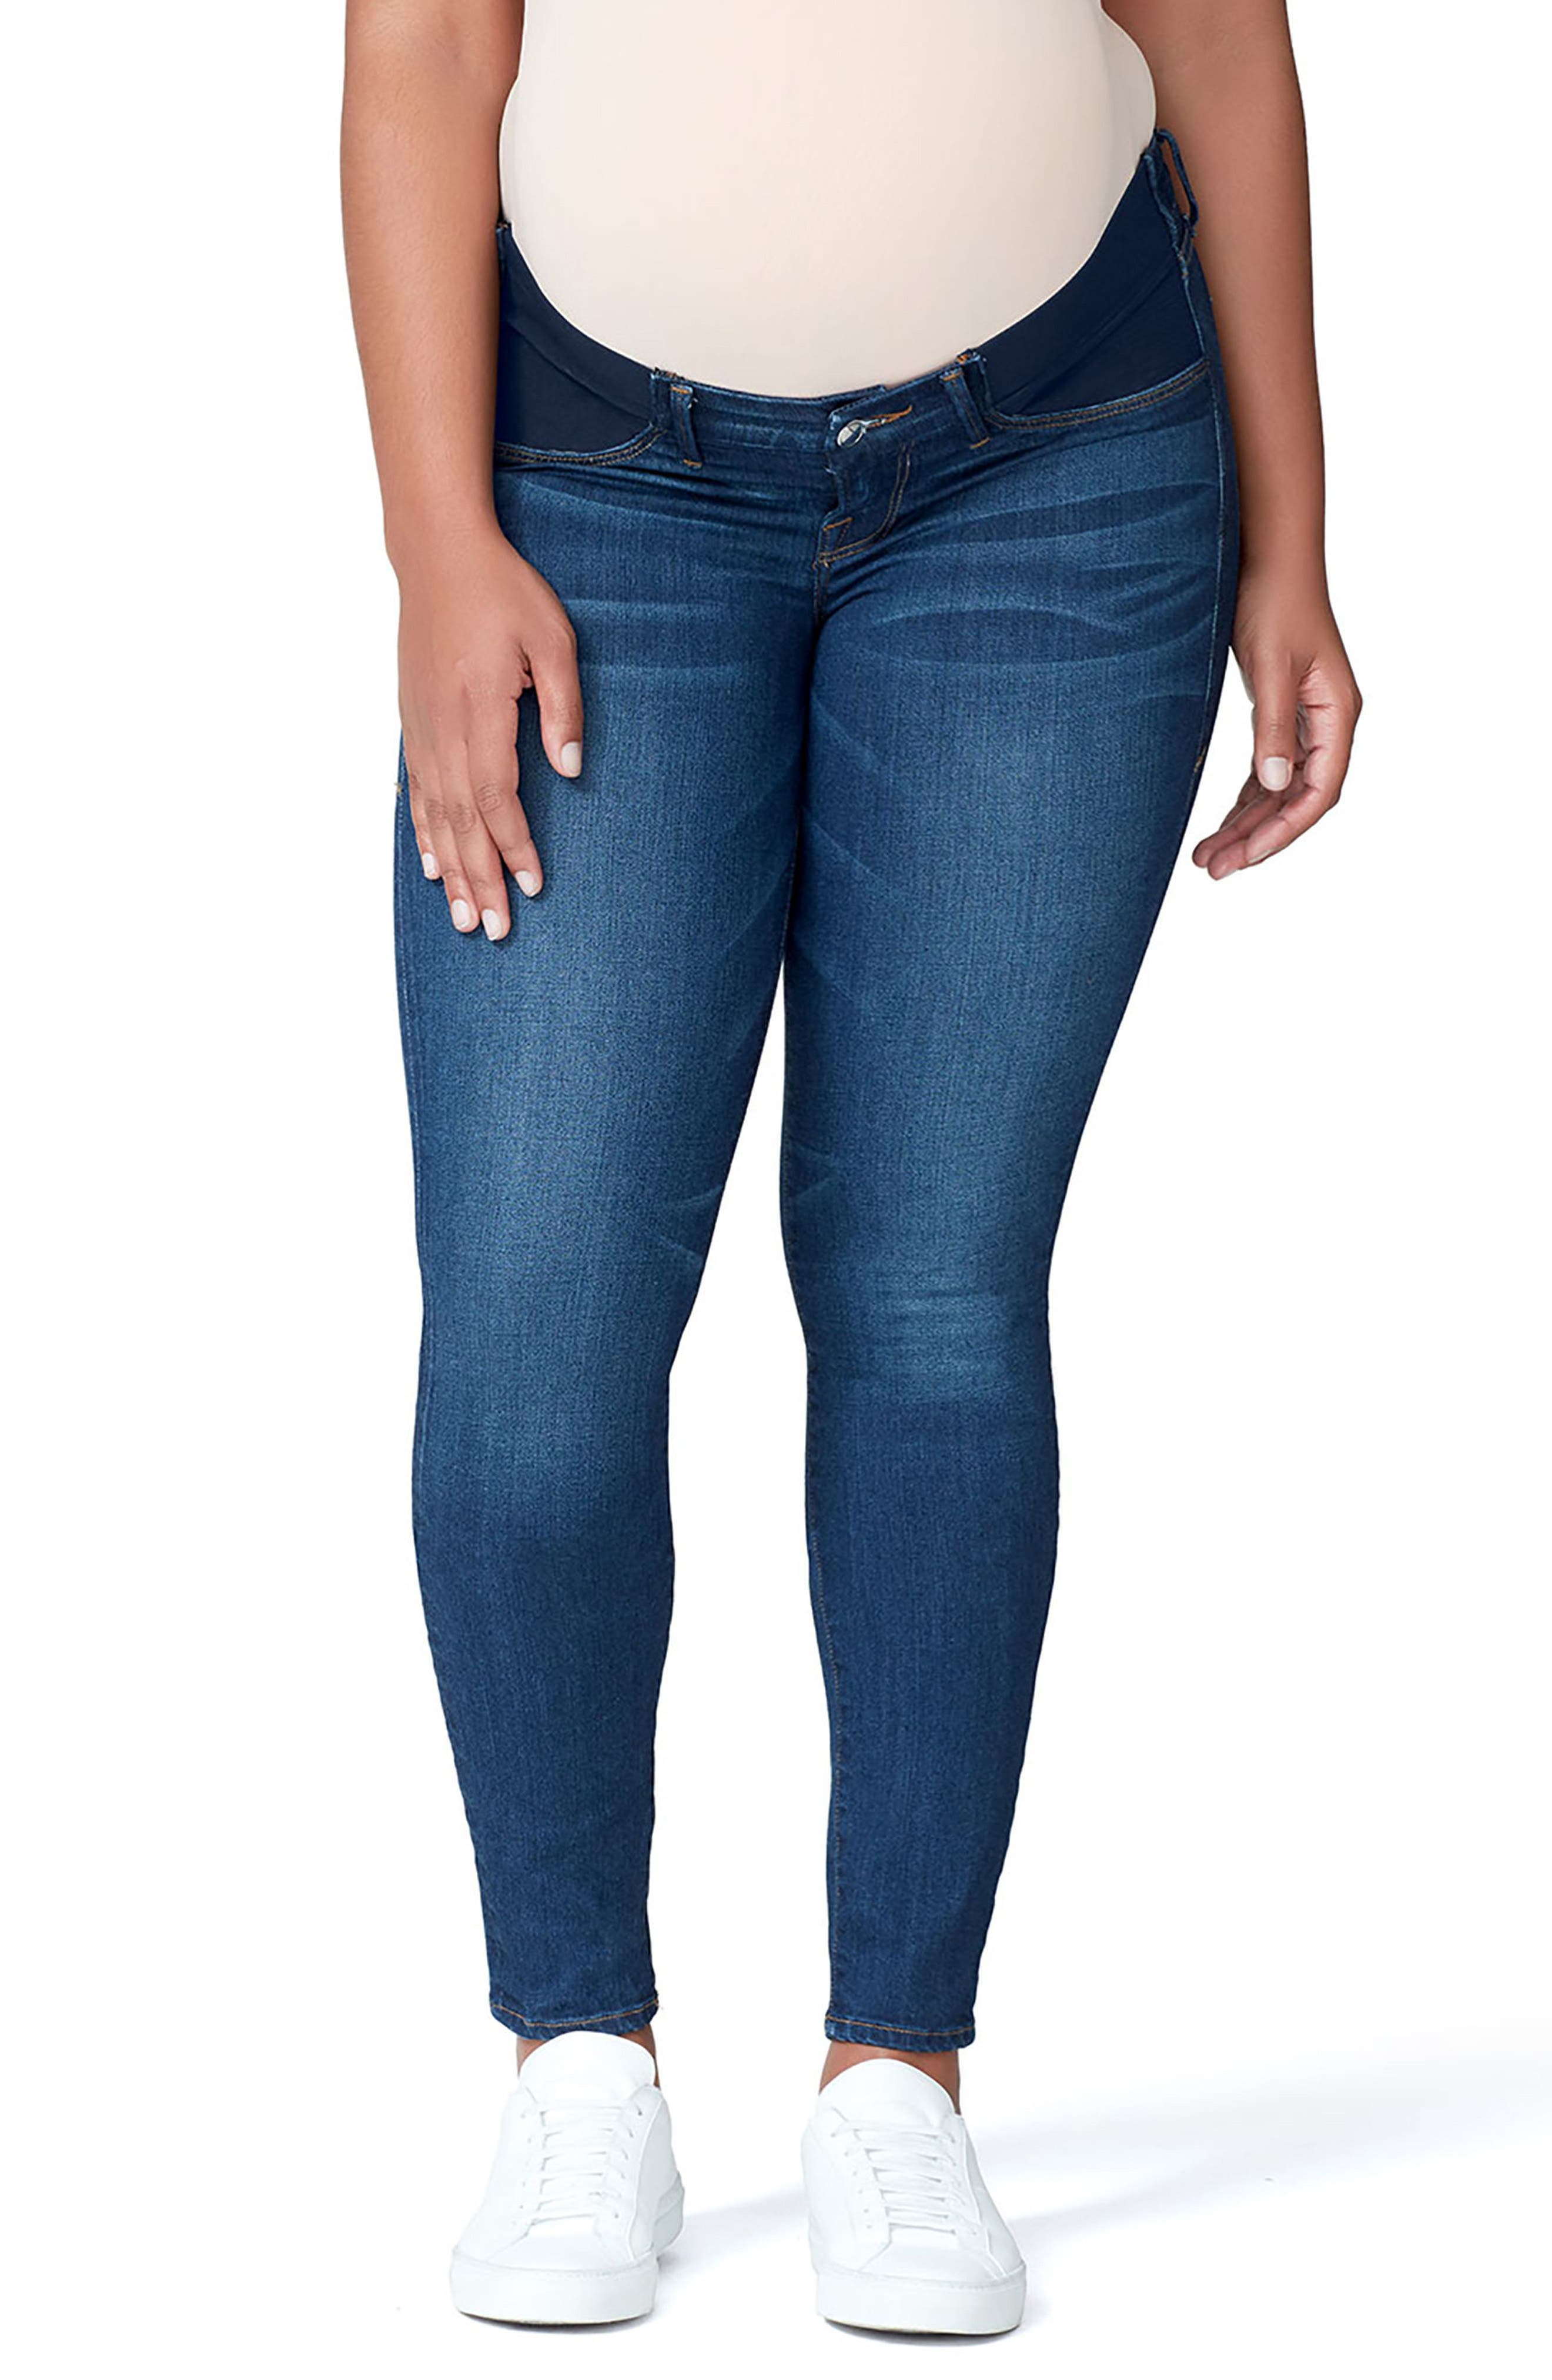 Good Mama The Honeymoon Low Rise Maternity Skinny Jeans,                             Main thumbnail 1, color,                             BLUE